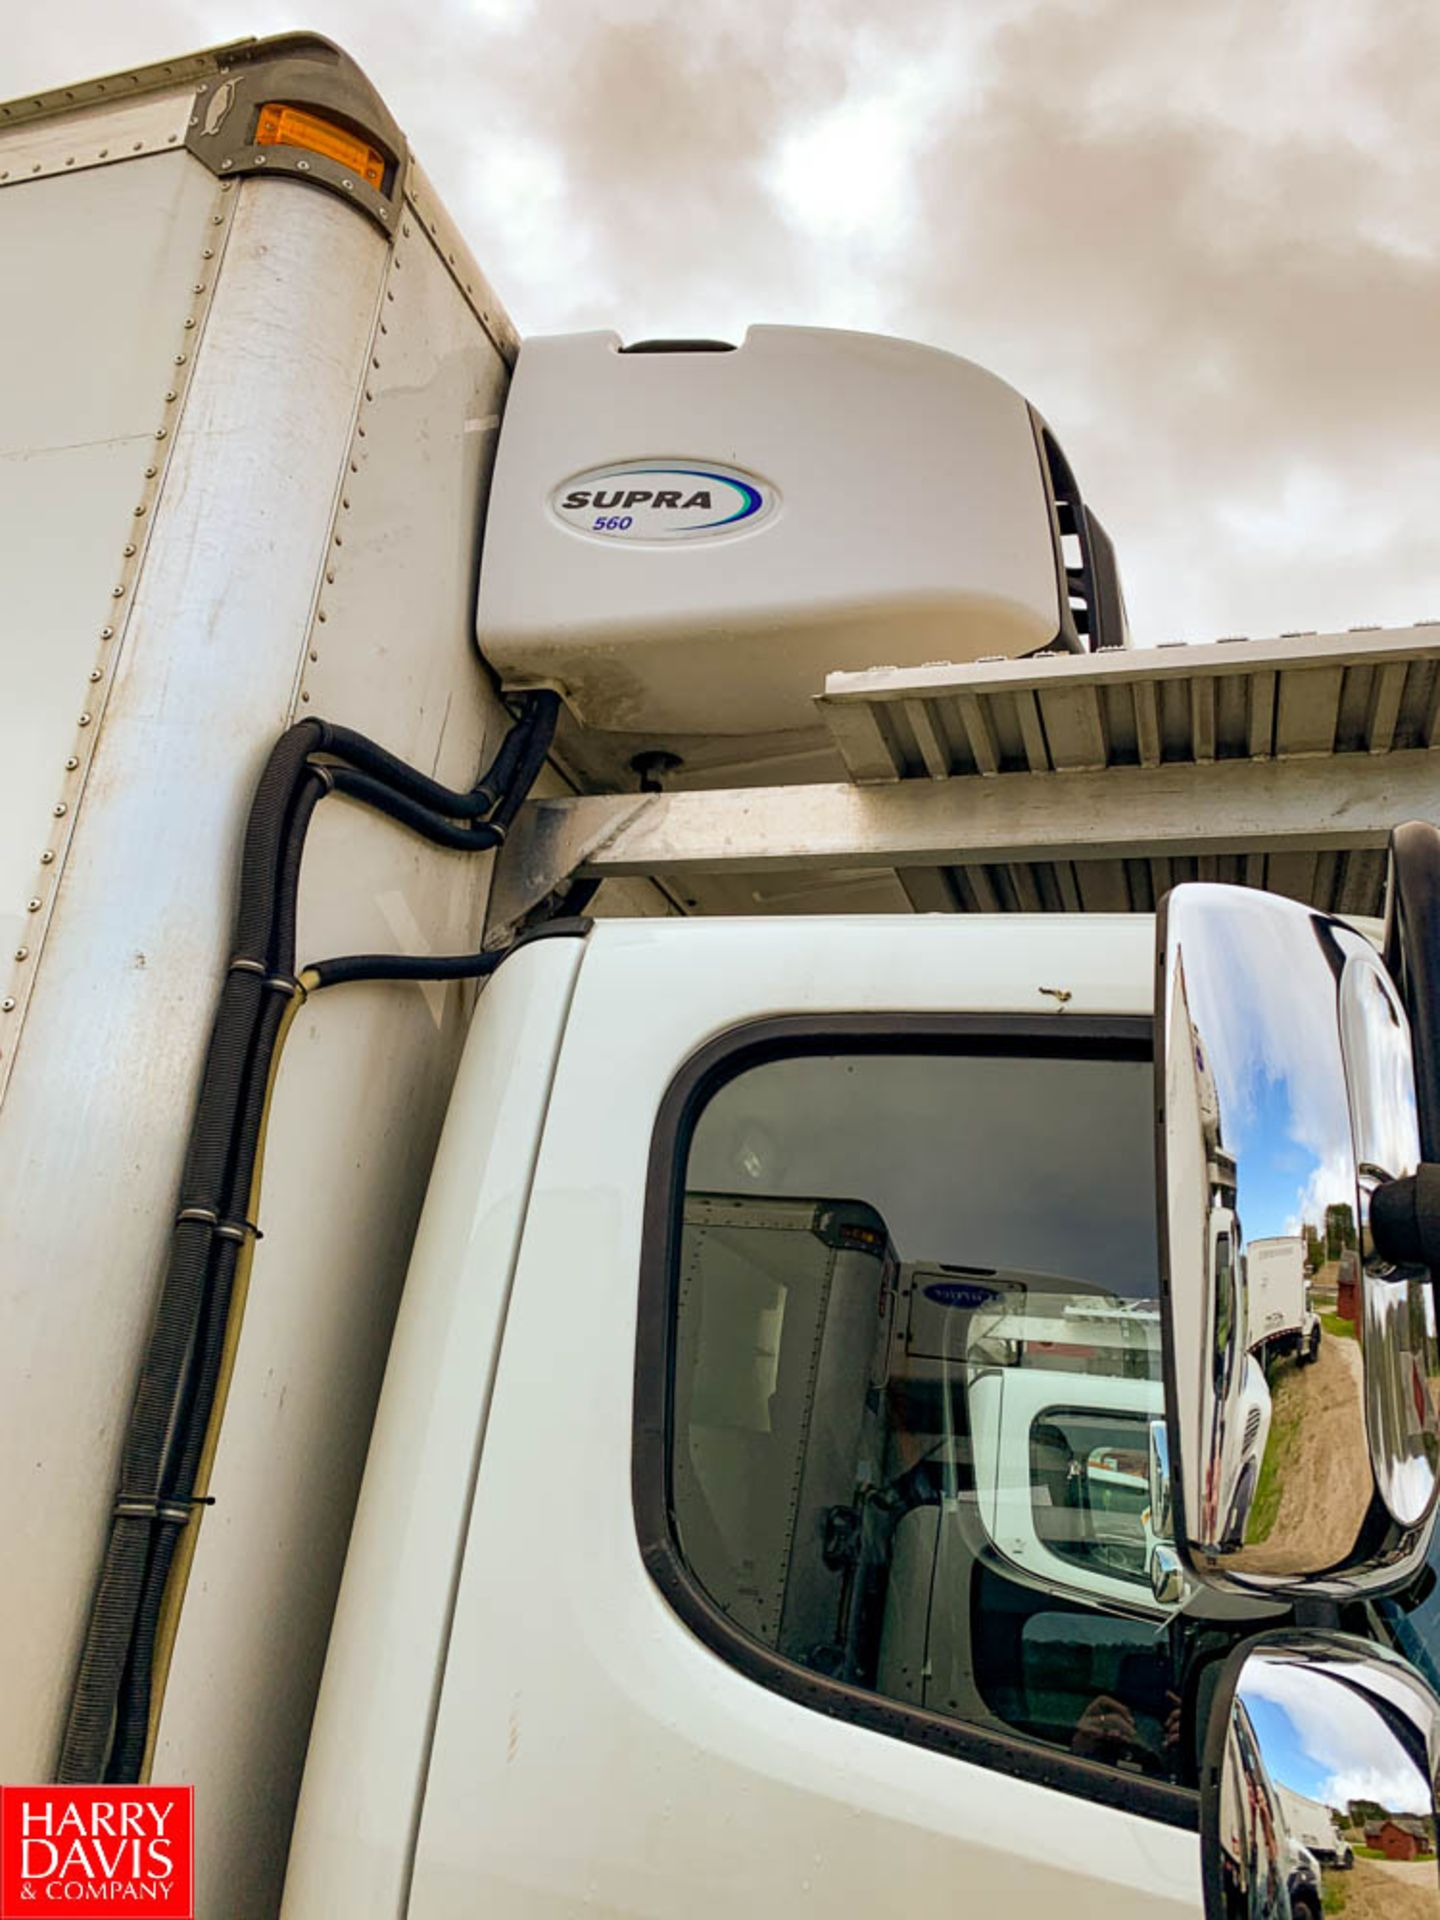 2017 Freightliner 20' Refrigerated Delivery Truck Model: M2106, 33,000 GVWR, Cummins IBS 6.7 280 - Image 8 of 8